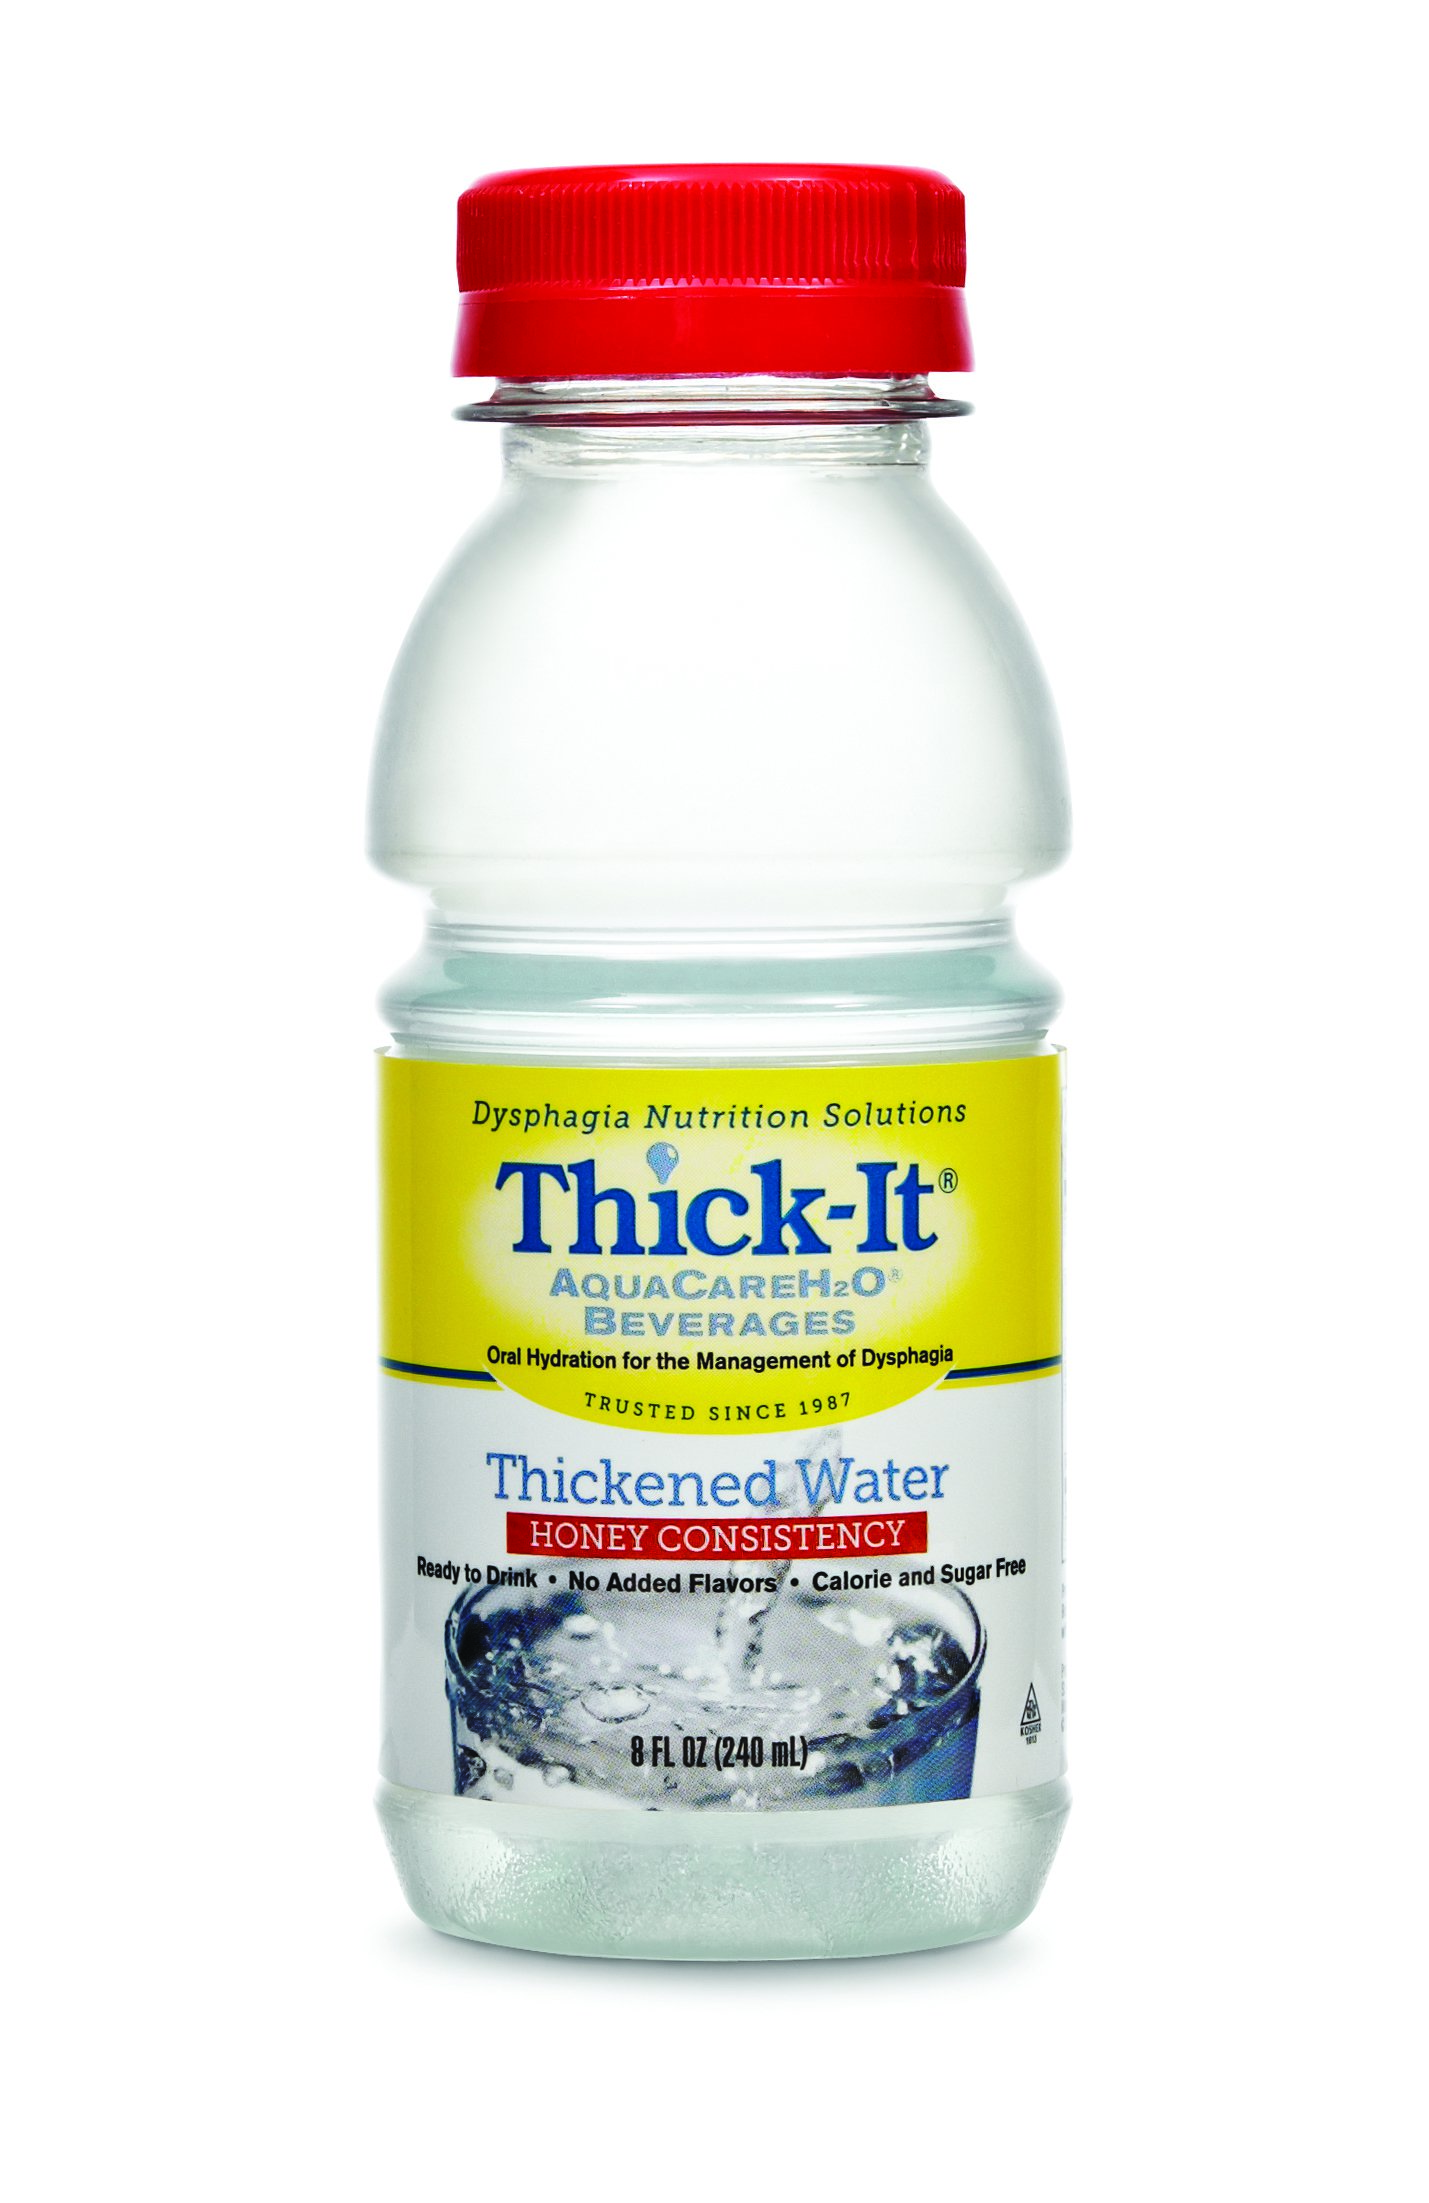 Thick-It AquaCareH2O Thickened Water 8 oz. Bottle Unflavored Ready to Use Honey Consistency, B453-L9044 - EACH